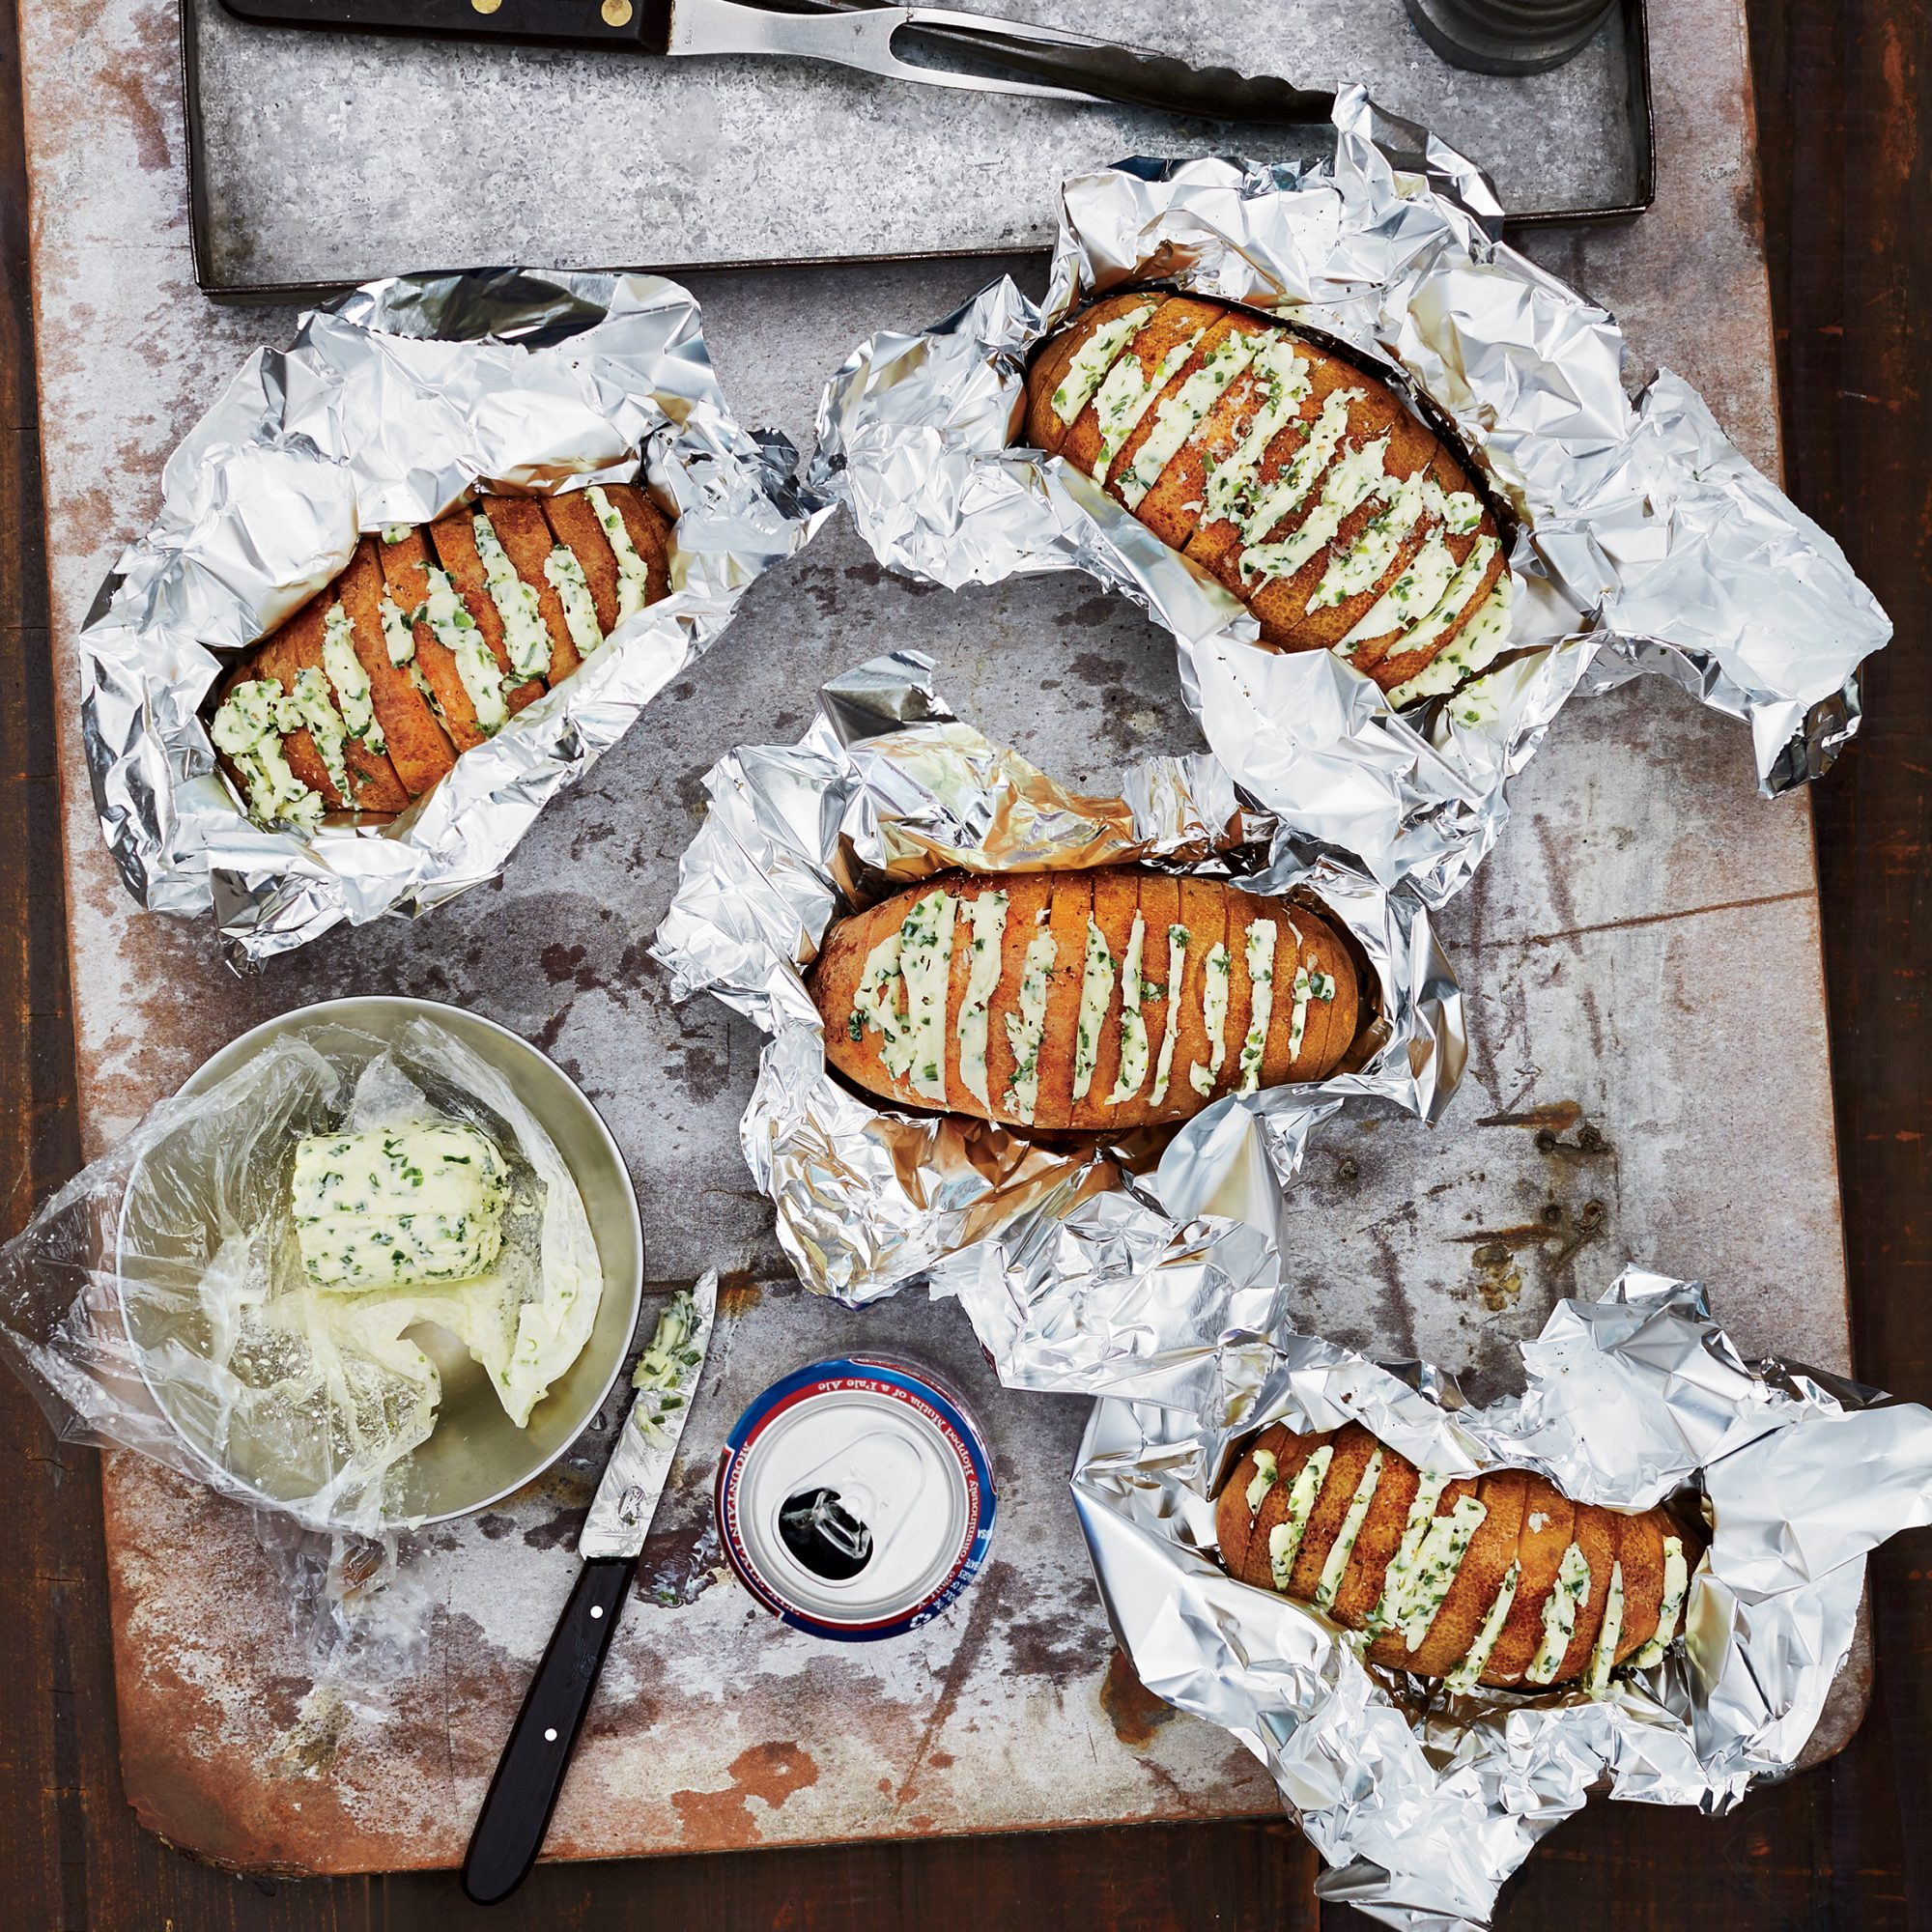 Day 24: Grill-Baked Potatoes with Chive Butter